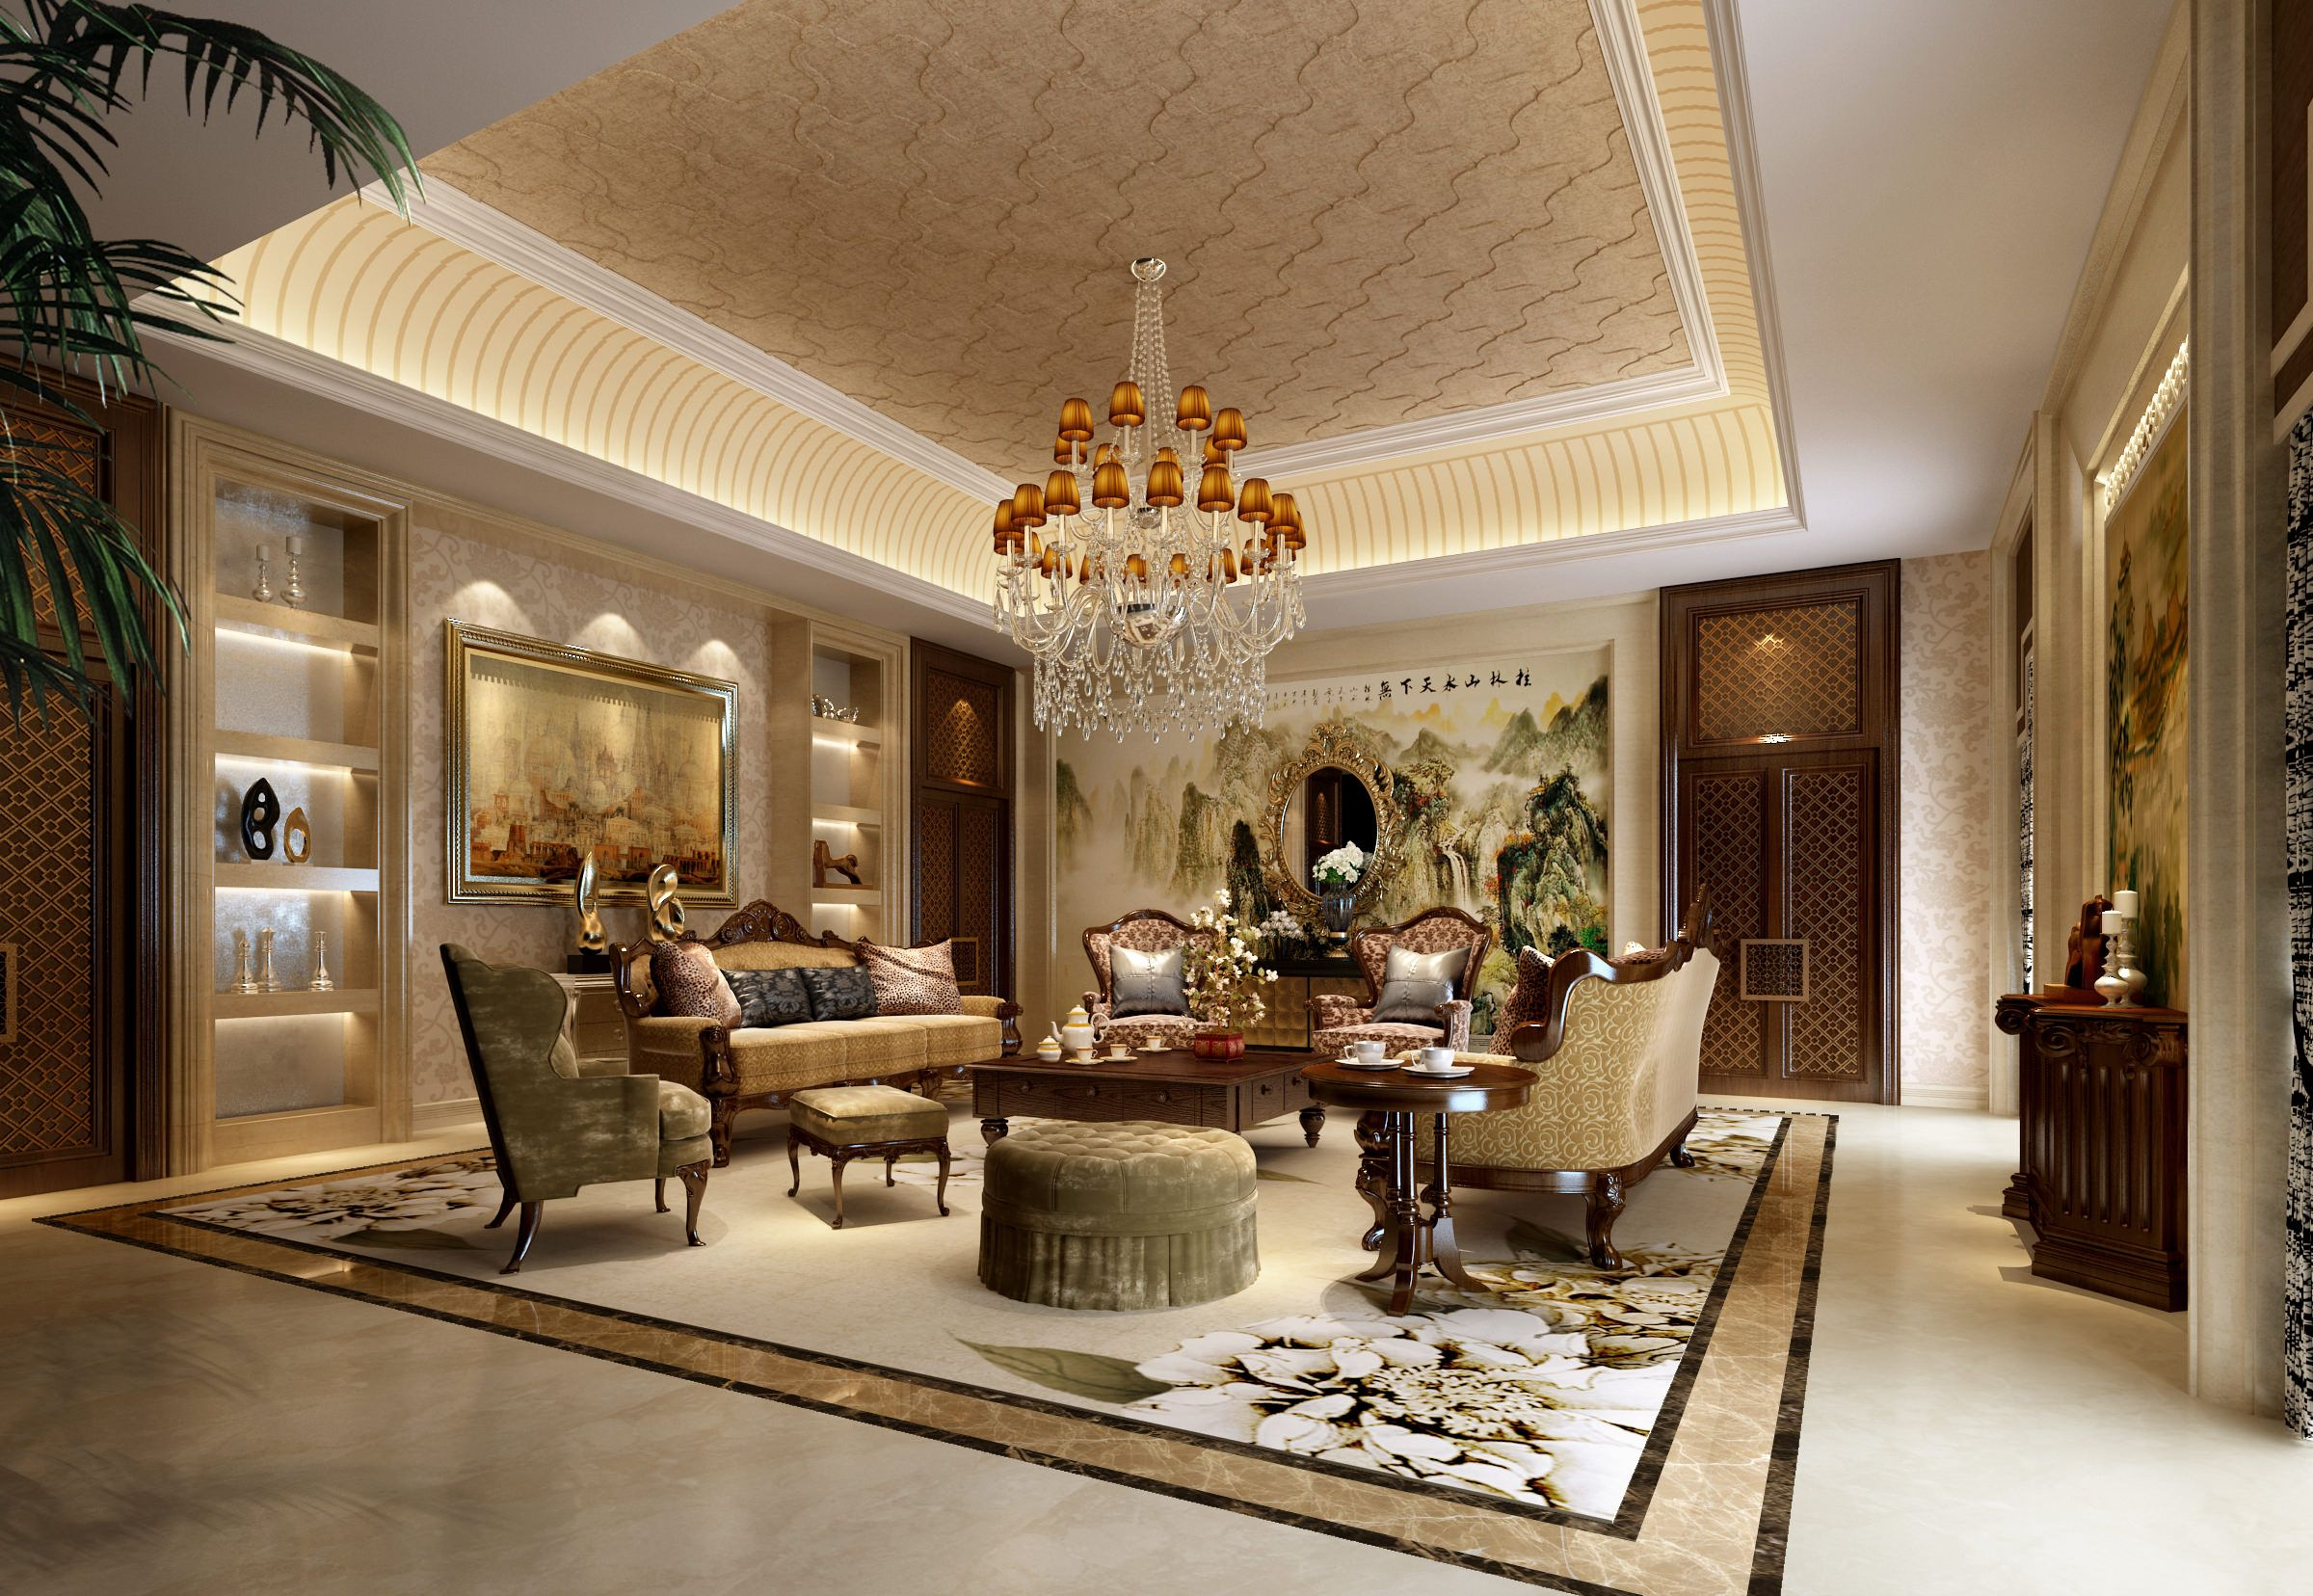 Luxury living room | 3D model | Pinterest | Luxury, Living rooms and ...